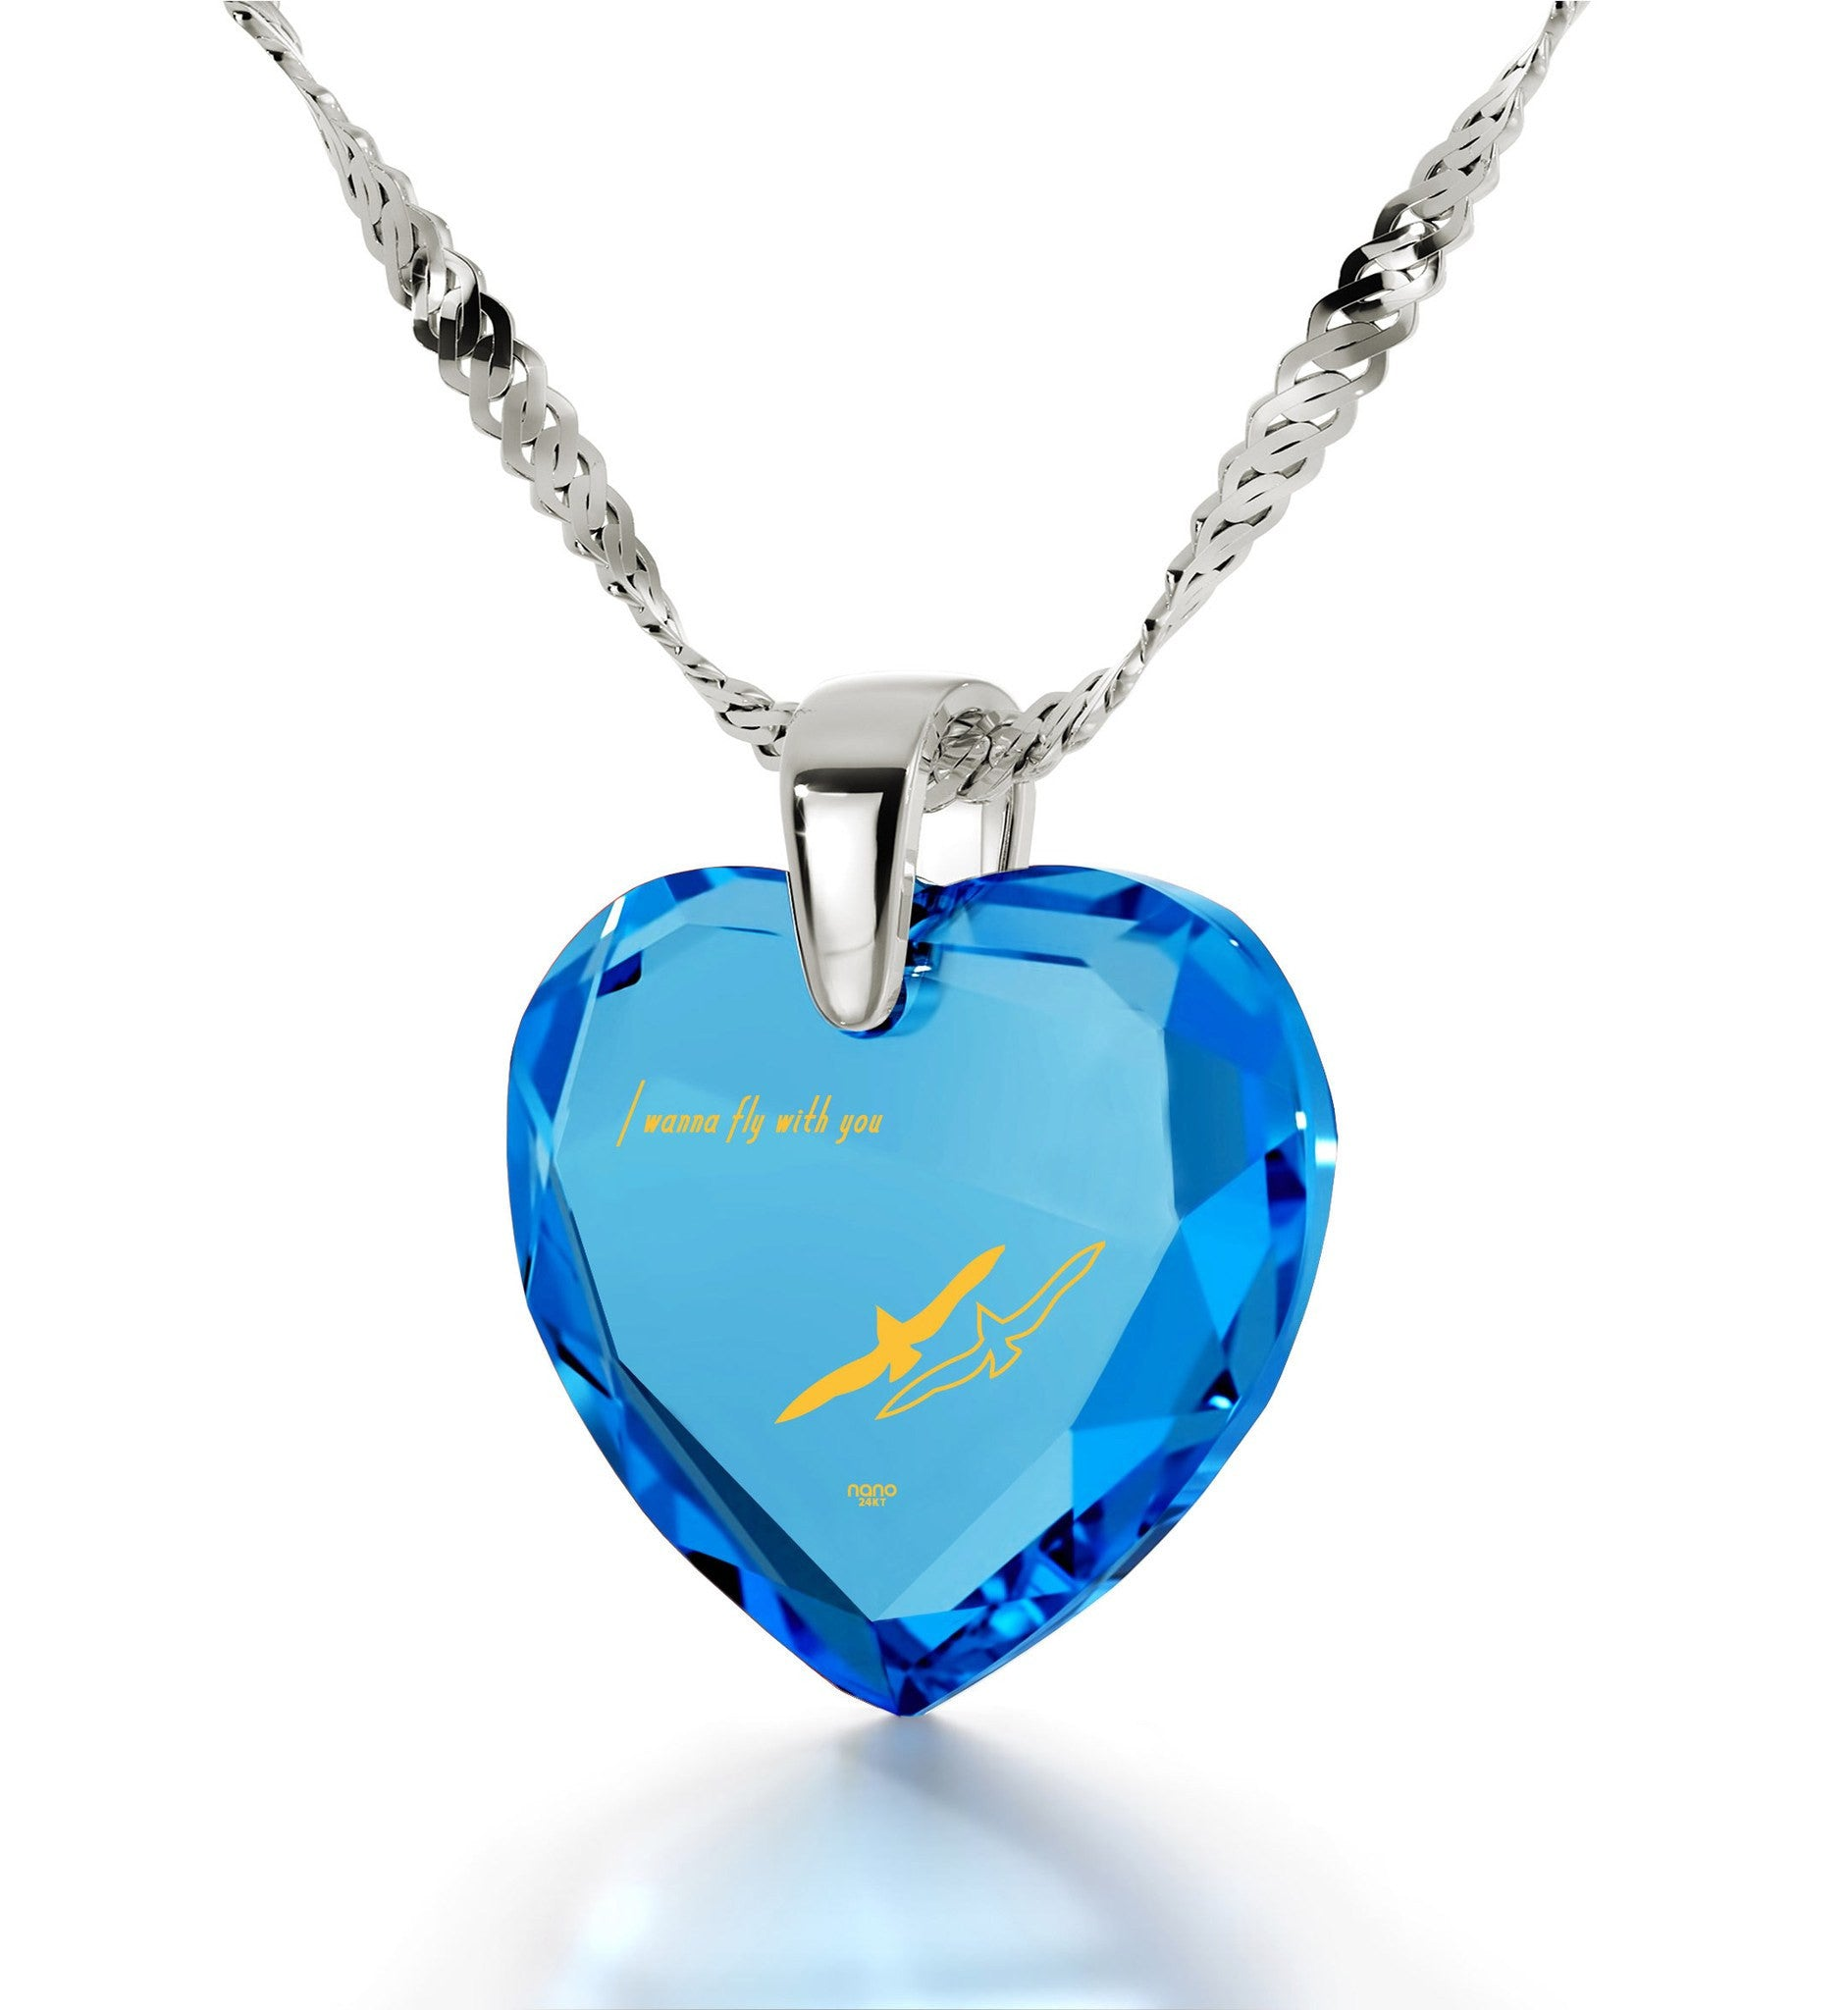 """Romantic Gift for Her, ""I Wanna Fly with You"" Engraved In 24k Gold, Cubic Zirconia, Turquoise Jewelry"""